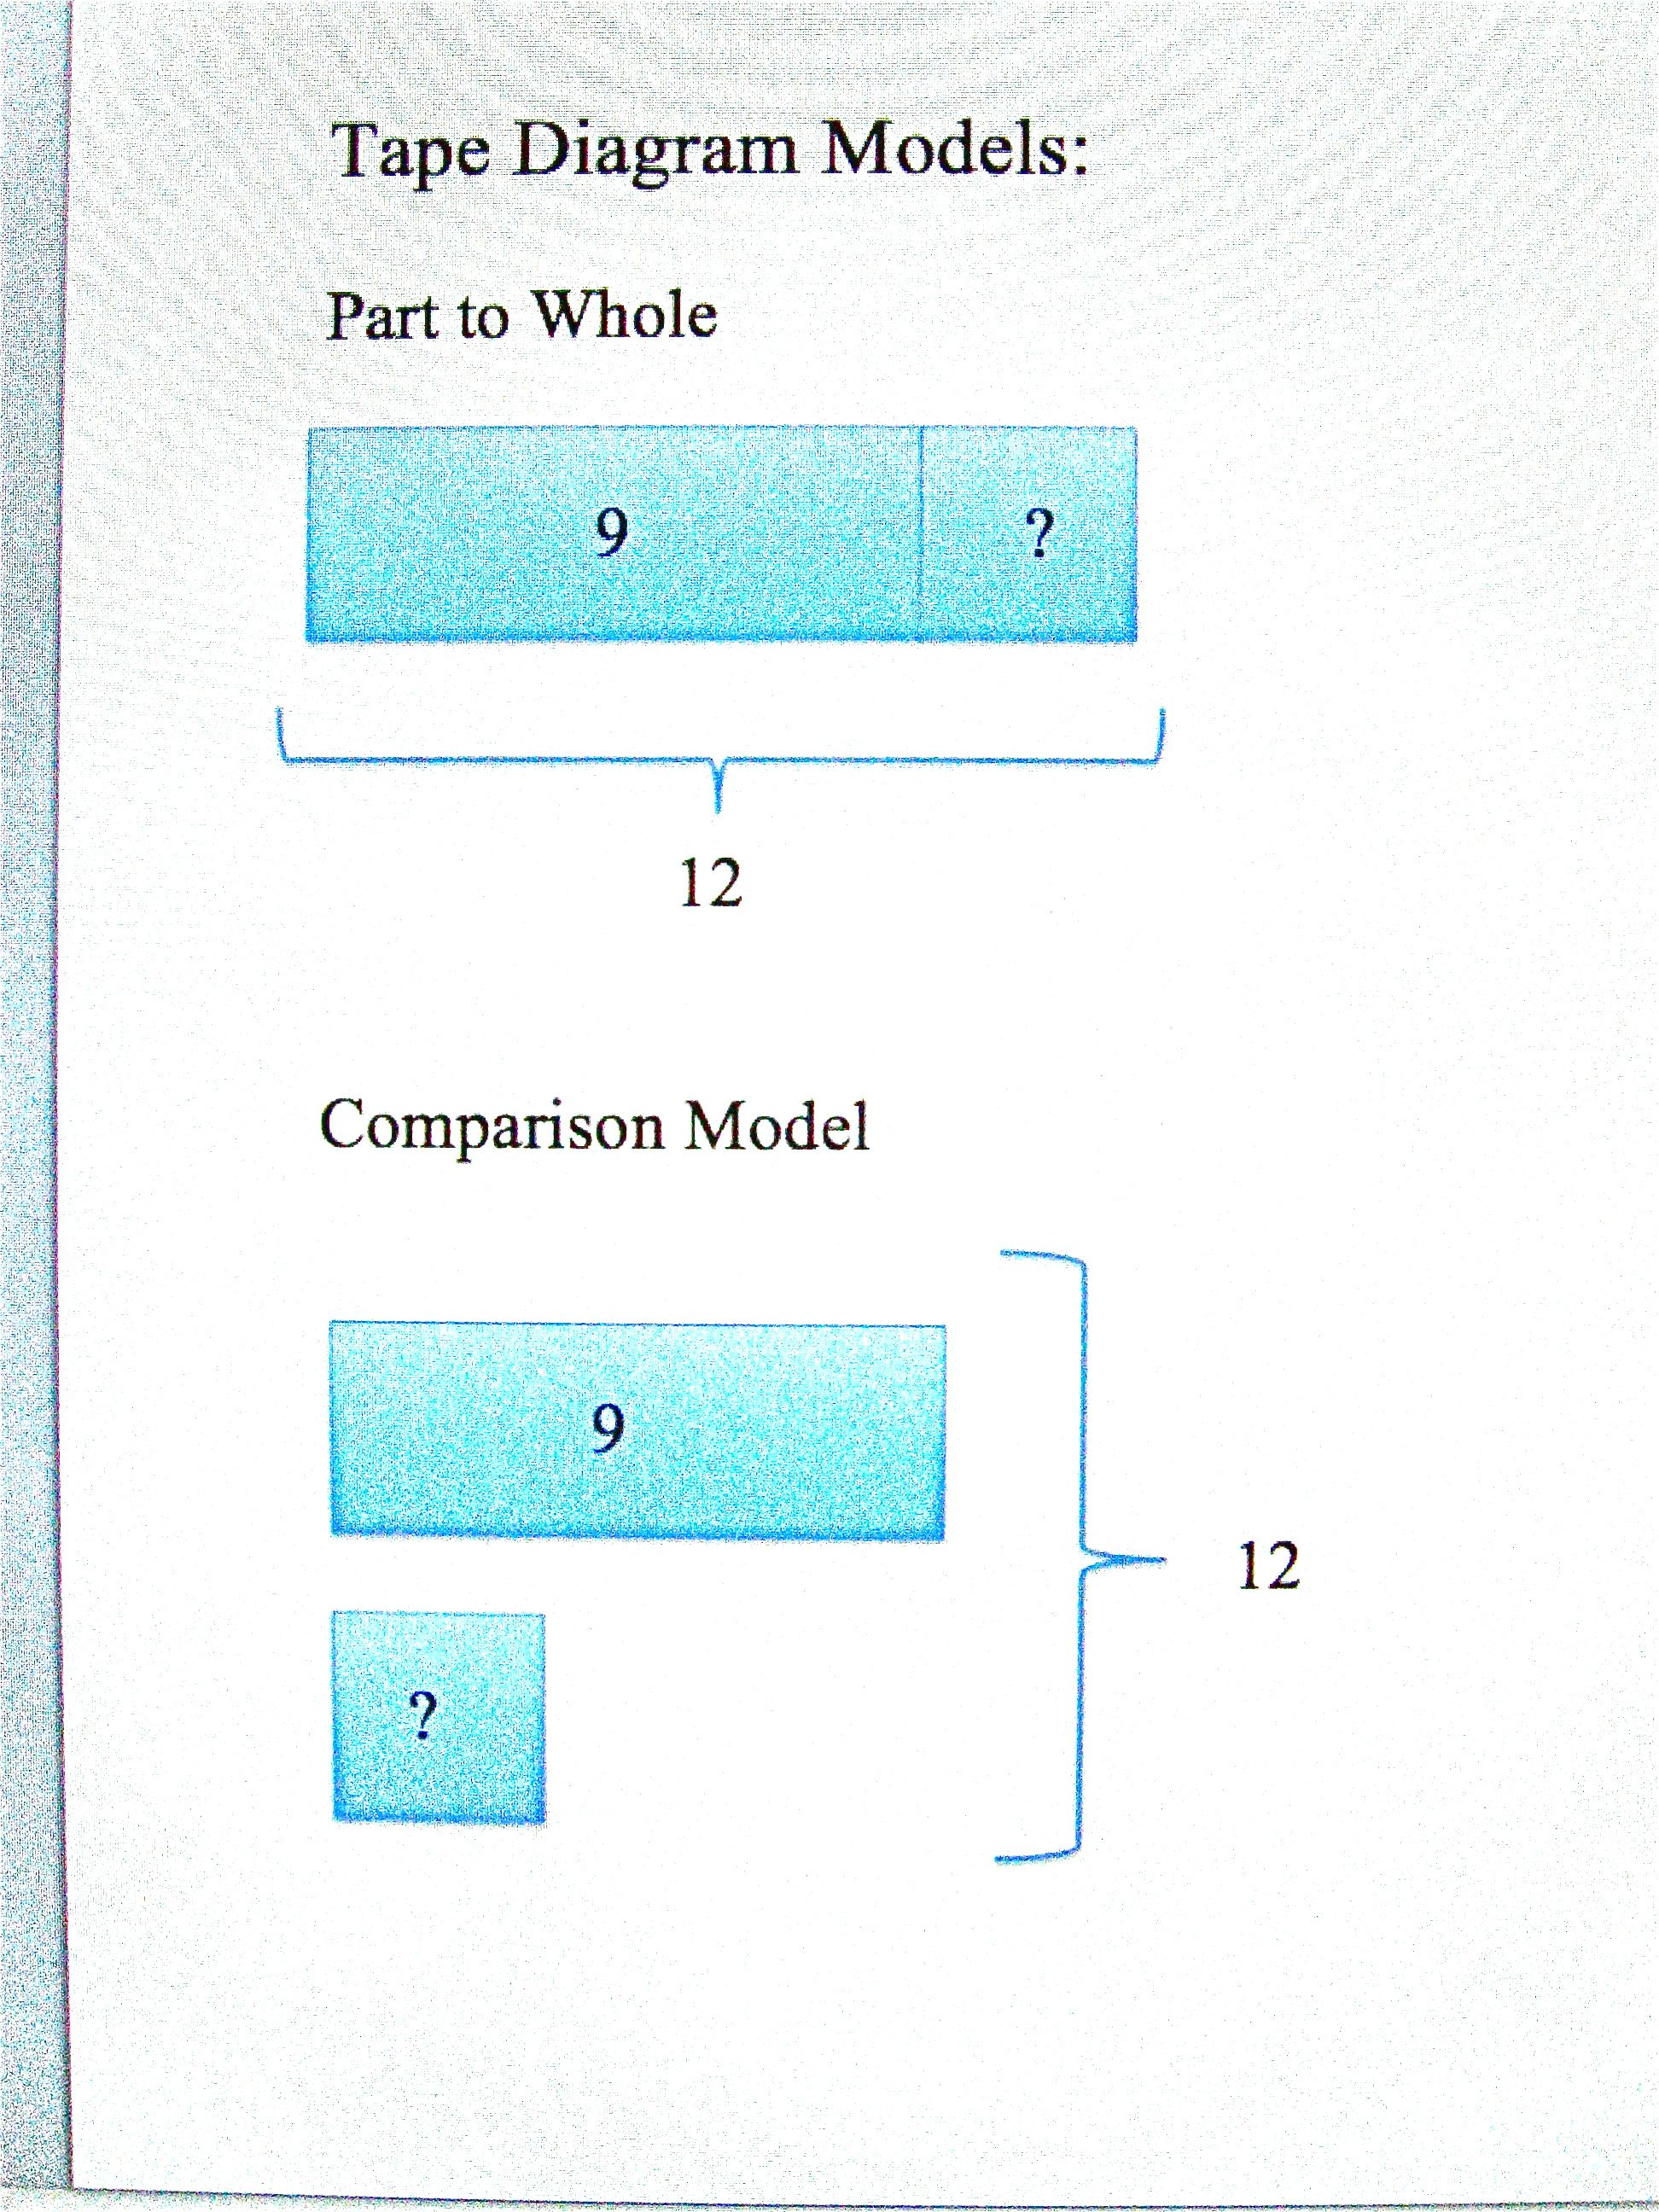 hight resolution of tape diagram models part to whole comparison models